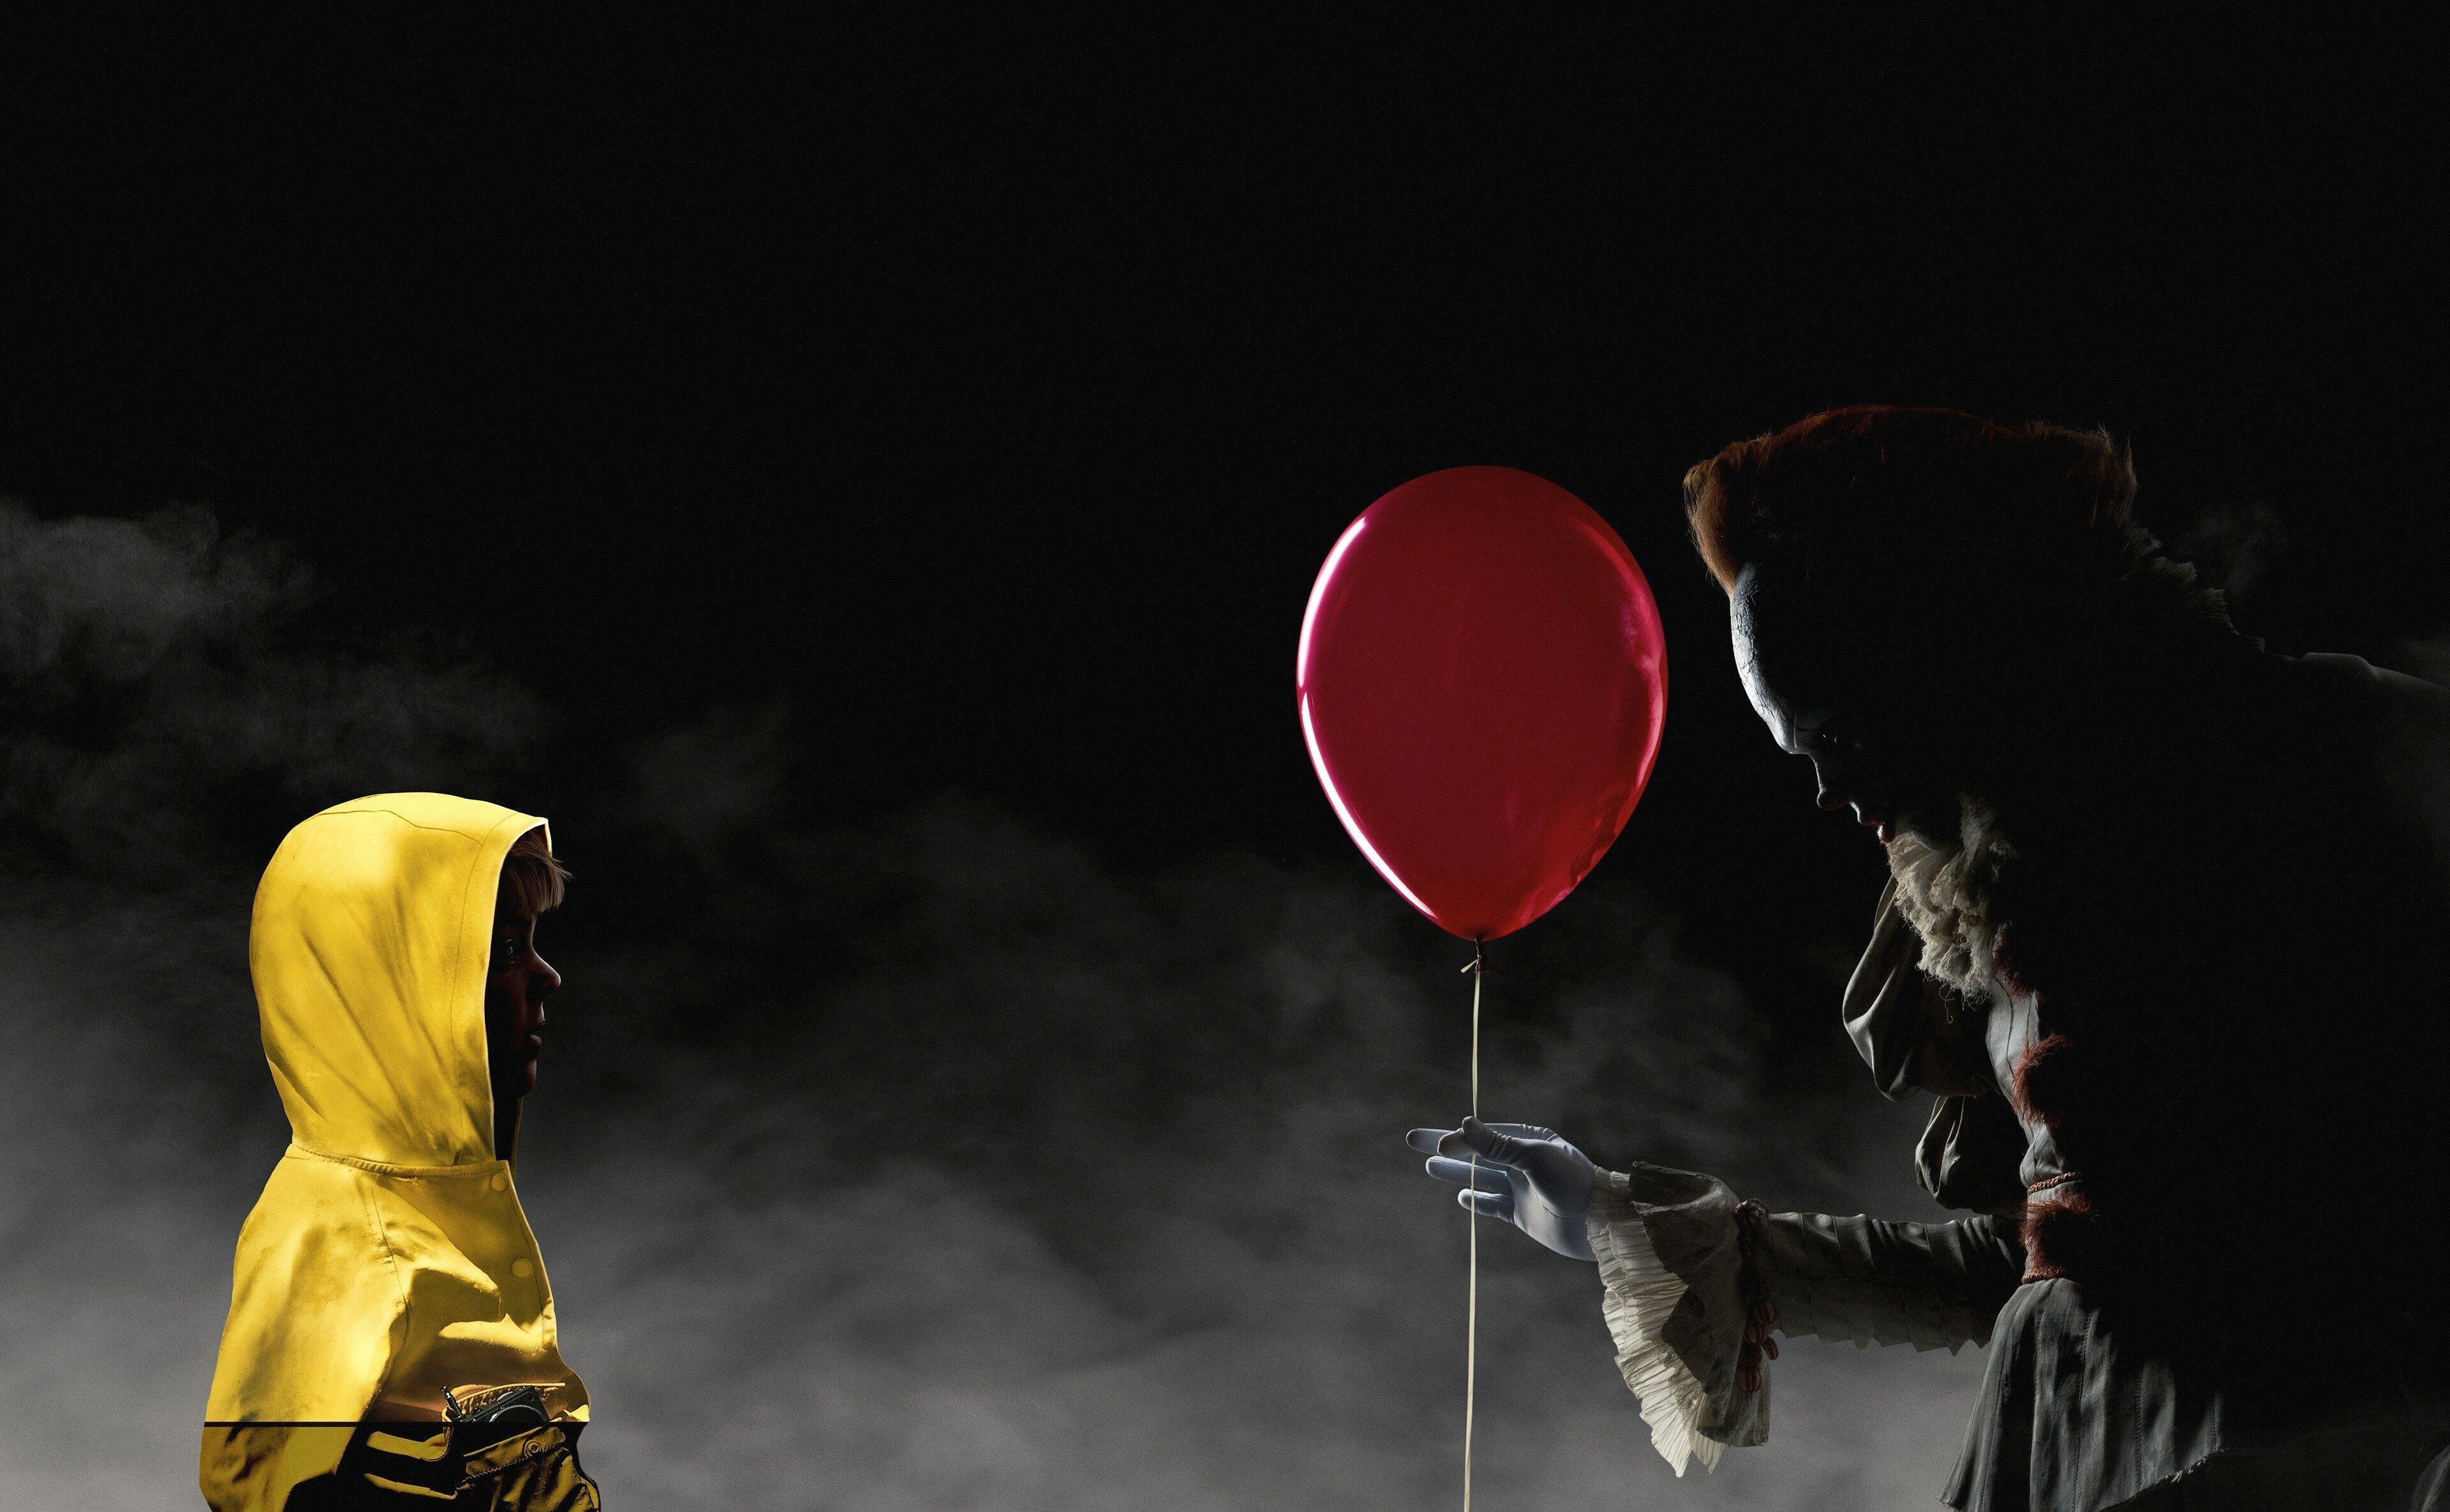 3840x2370 It 4k Nice Wallpaper Hd Pennywise Red Balloon 2017 Wallpaper